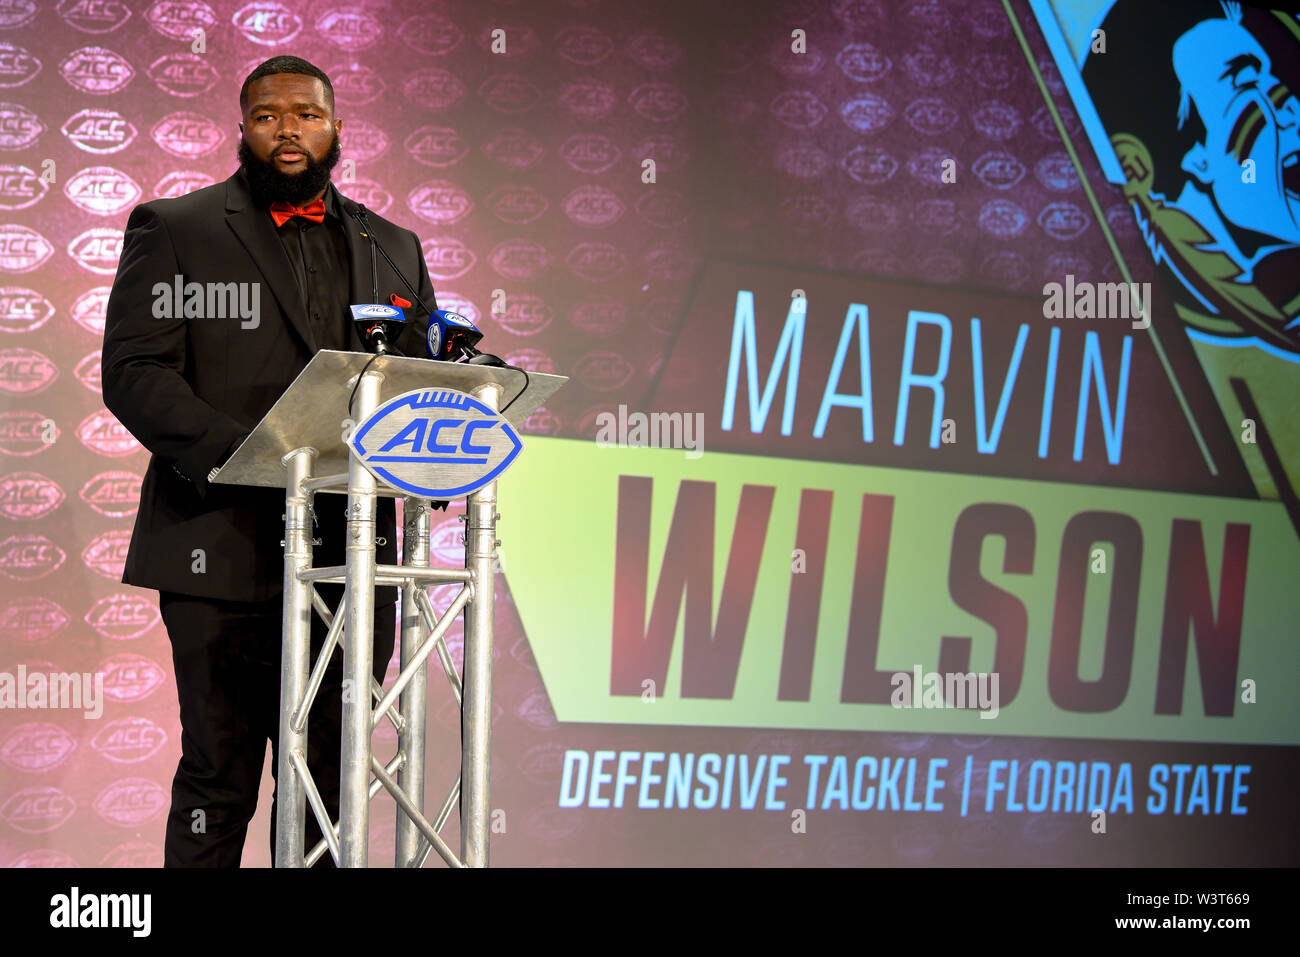 Charlotte, North Carolina, USA. 17th July, 2019. Florida State DT MARVIN WILSON speaking to reporters during the ACC Atlantic Division Coach/Student interviews on July 17, 2019 at the Westin Hotels & Resorts in Charlotte, N.C. Credit: Ed Clemente/ZUMA Wire/Alamy Live News - Stock Image